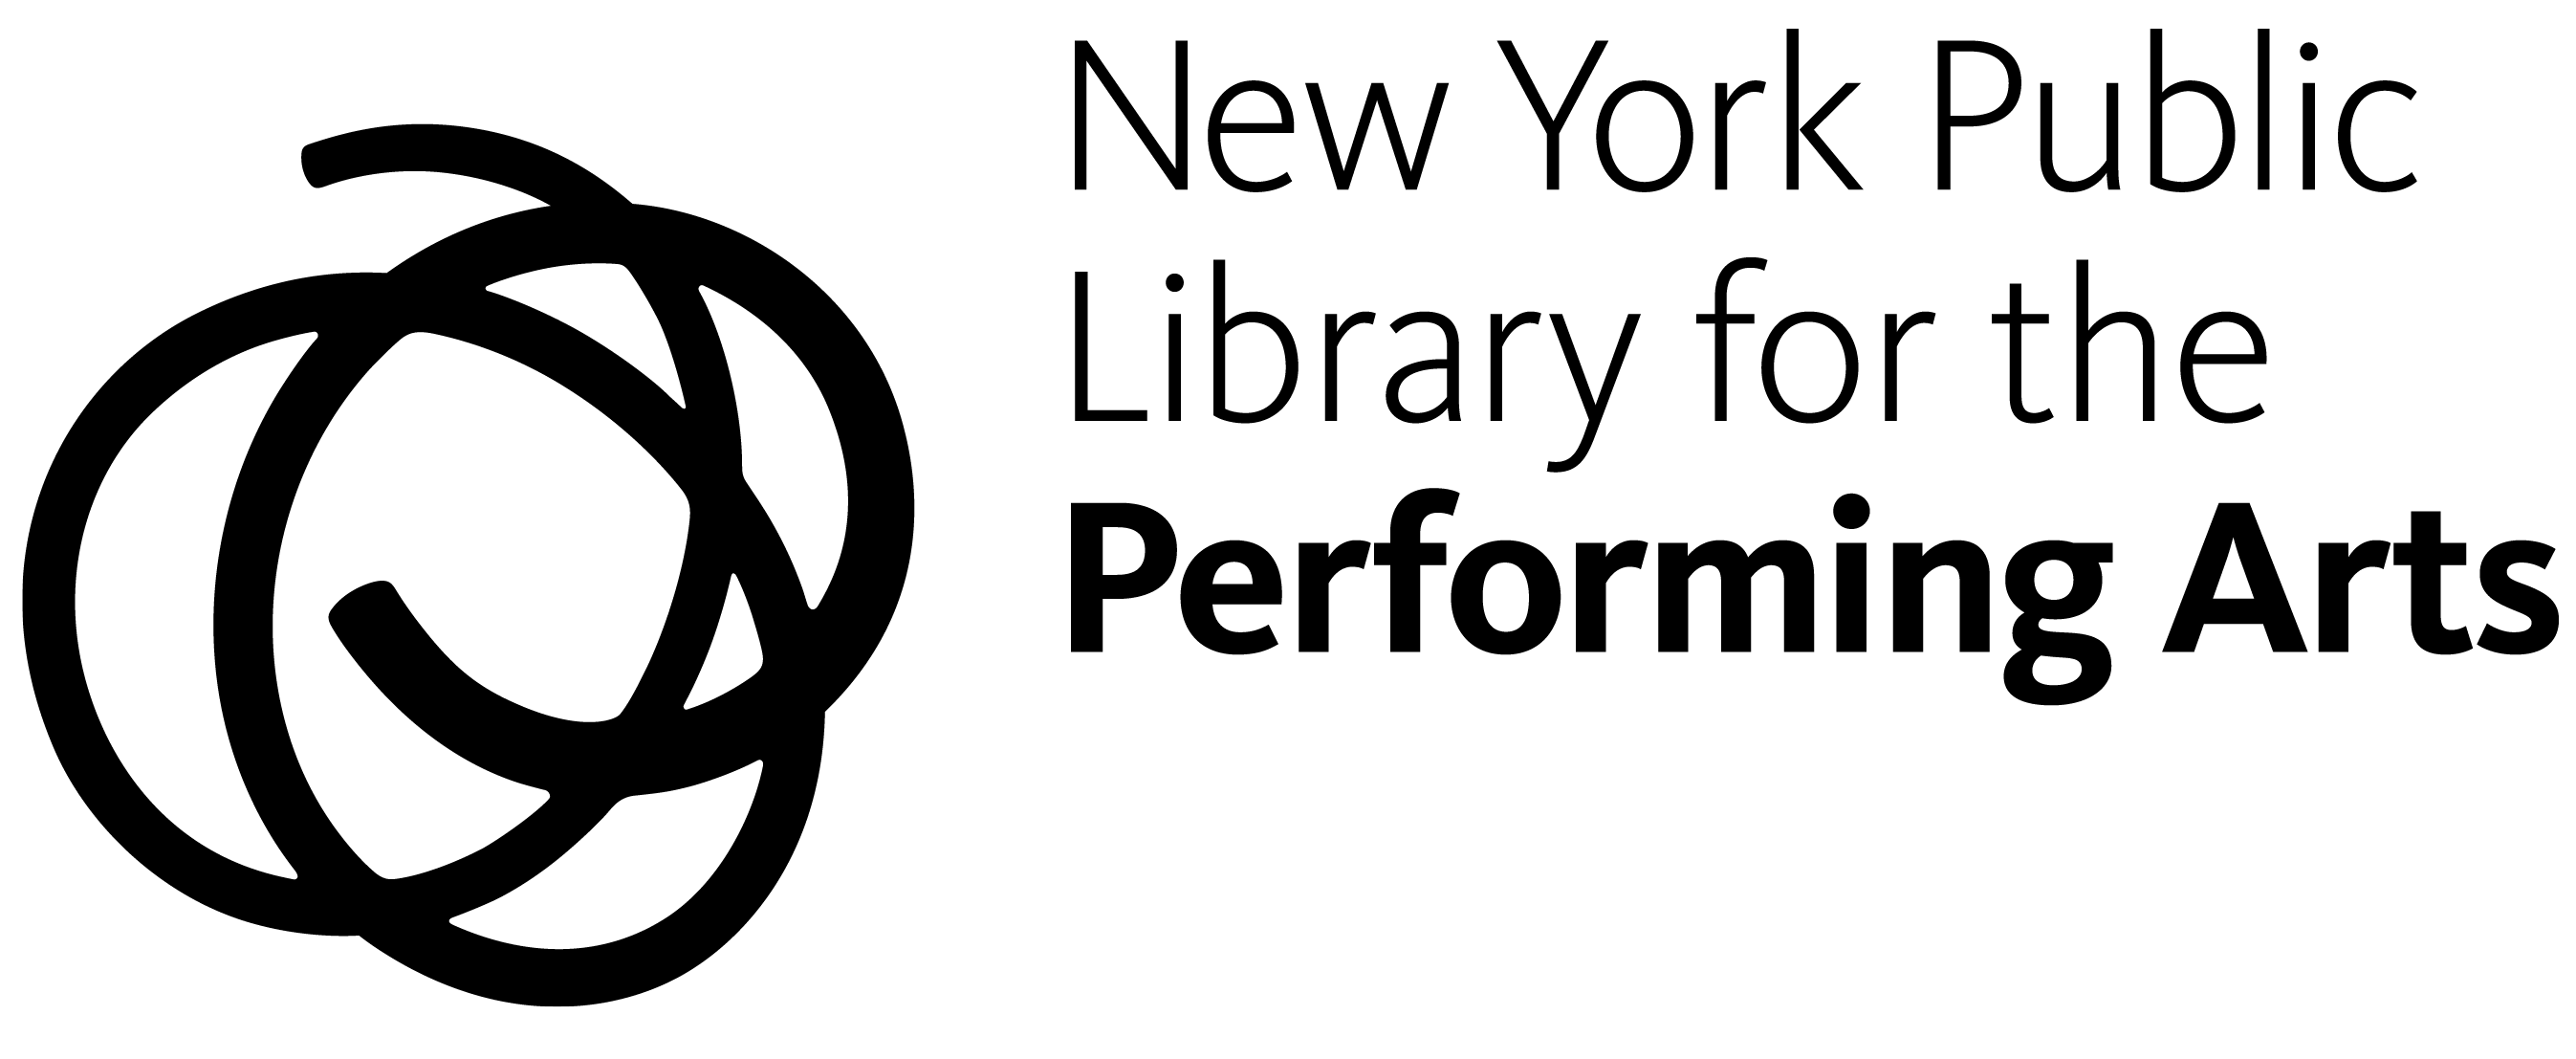 The New York Public Library for the Performing Arts logo